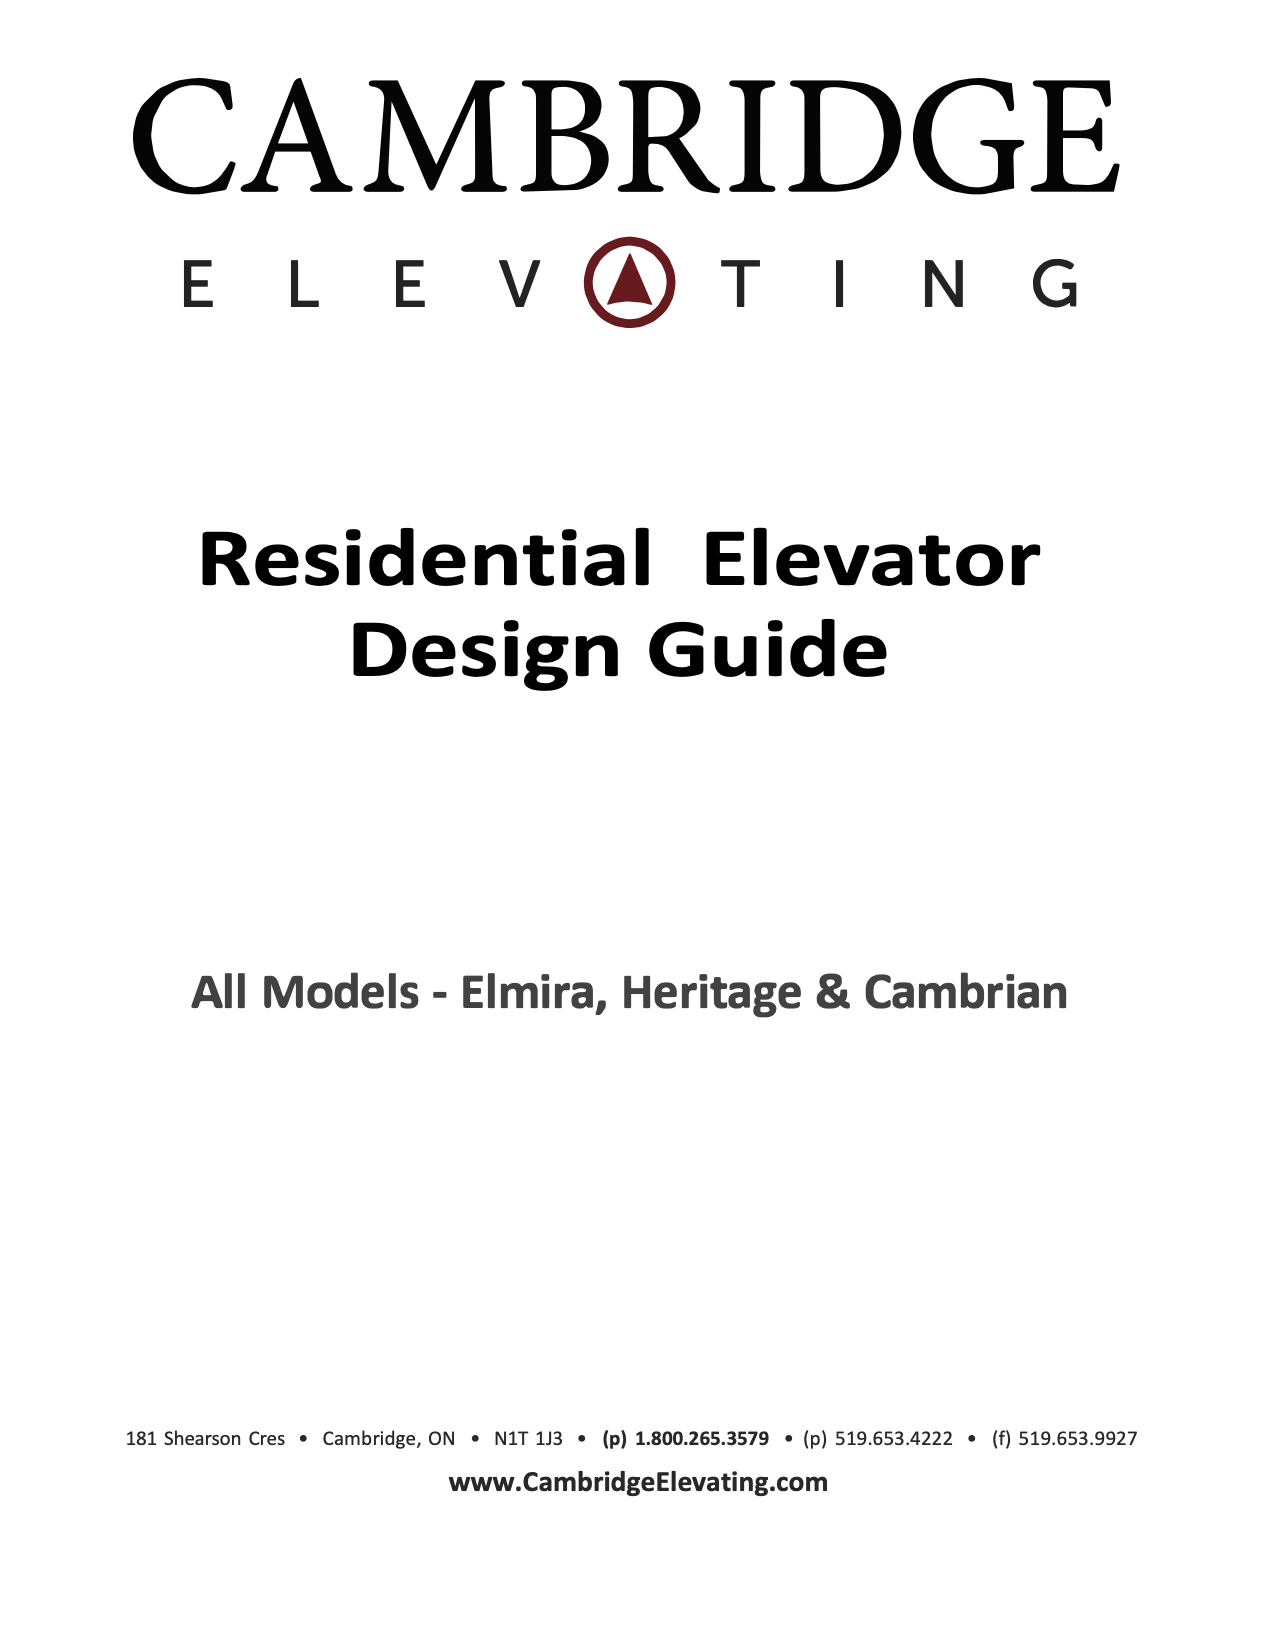 Options & Design Guide PDFs